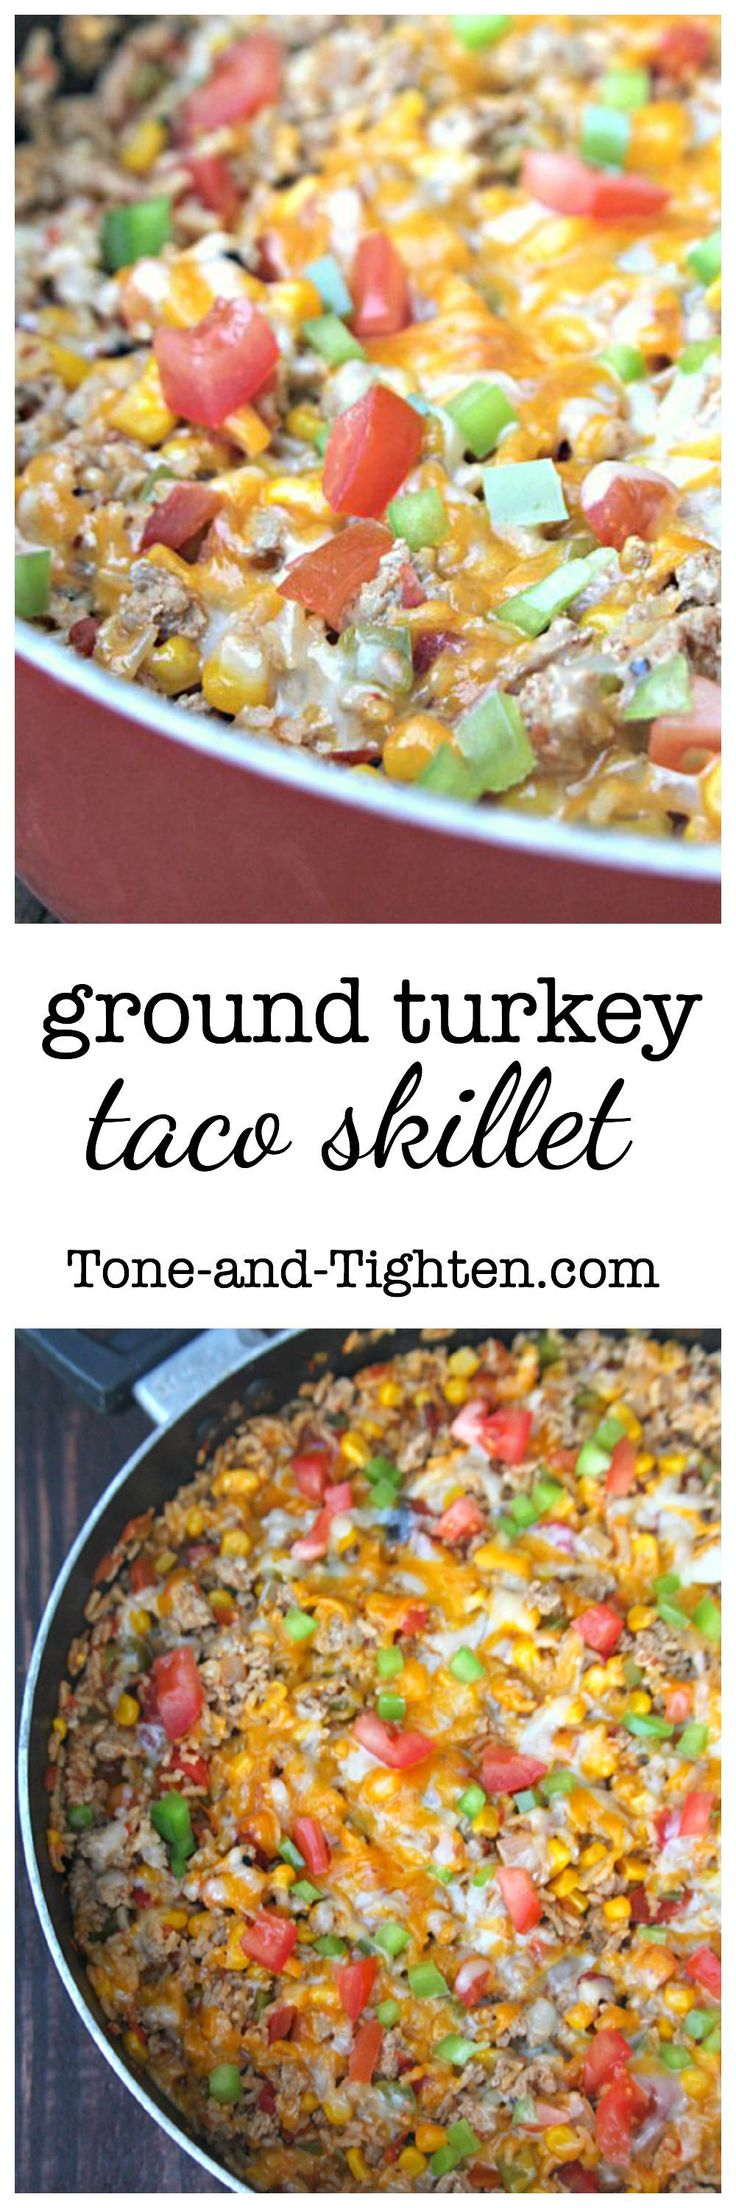 Ground Turkey Taco Skillet on Tone-and-Tighten.com